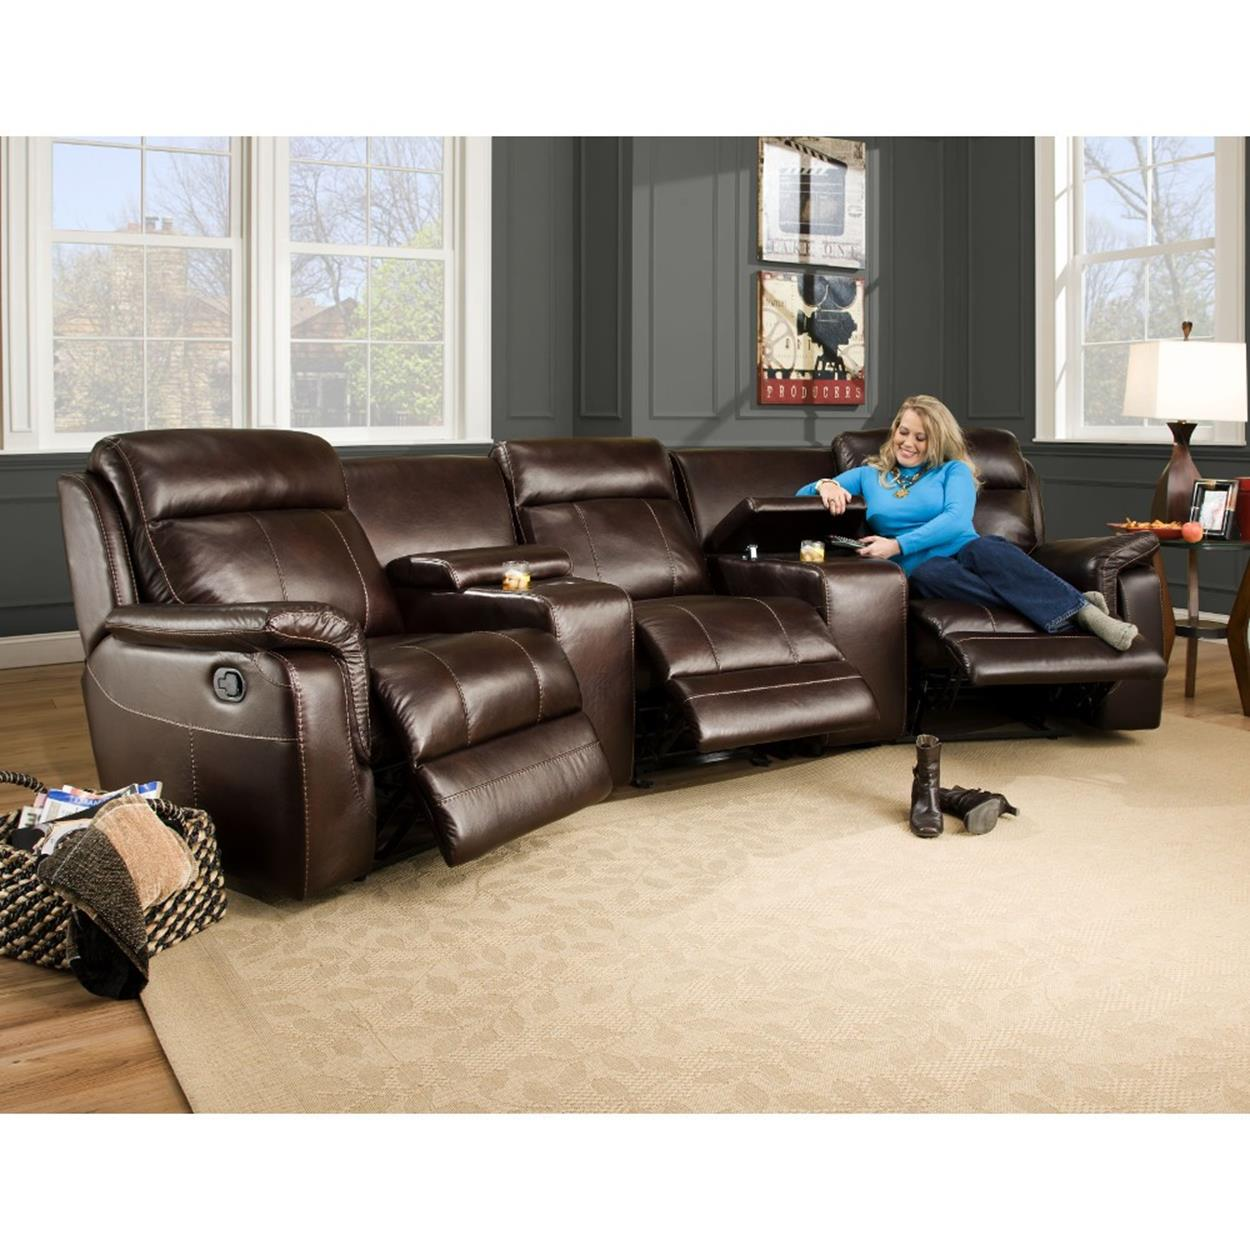 Living Room Theater Reviews: Home Theater Couch Living Room Furniture 29